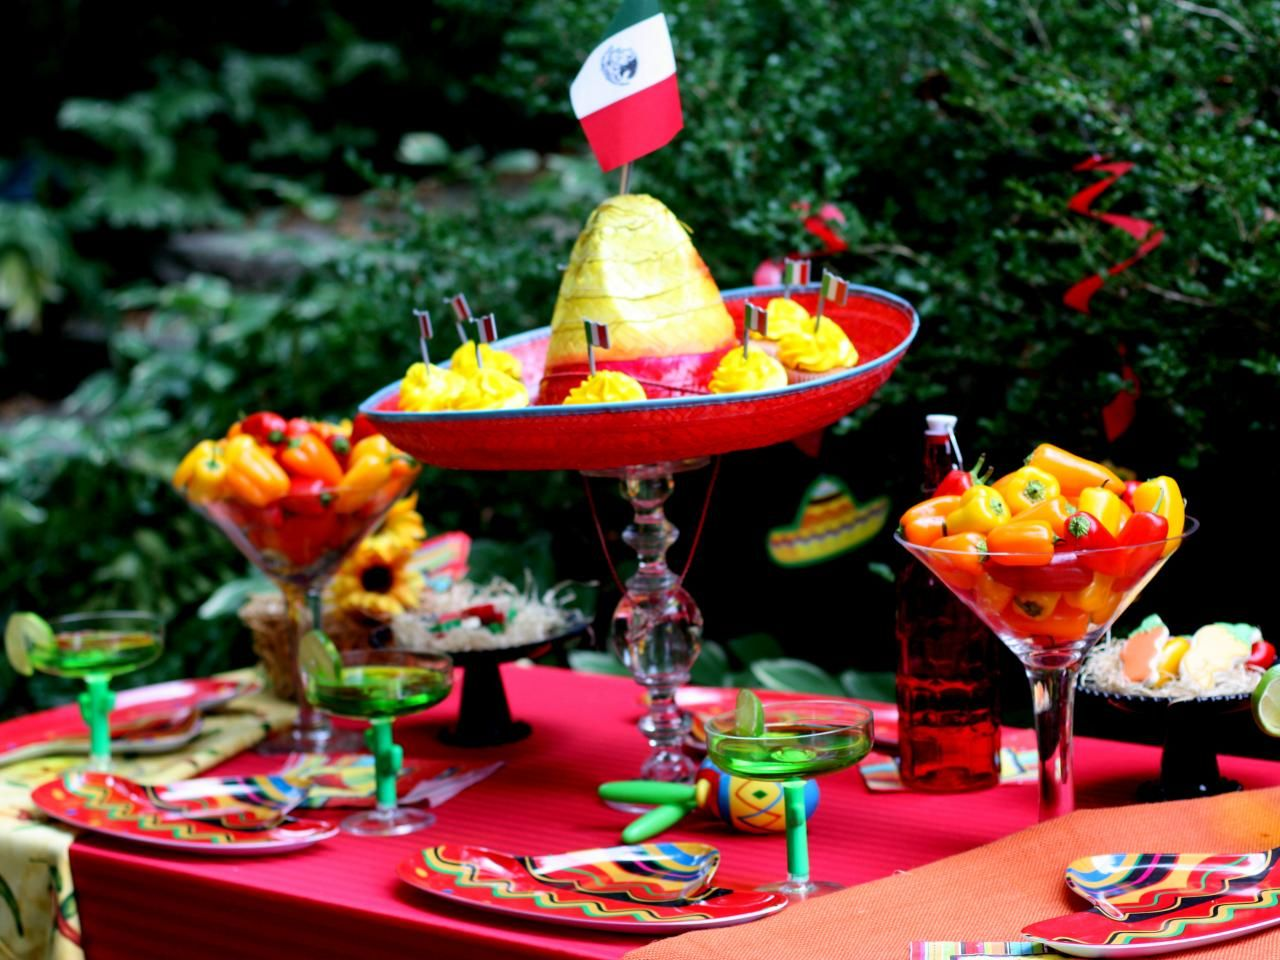 Sizzling themes for an outdoor summer party margarita for Outdoor yard decorations for summer